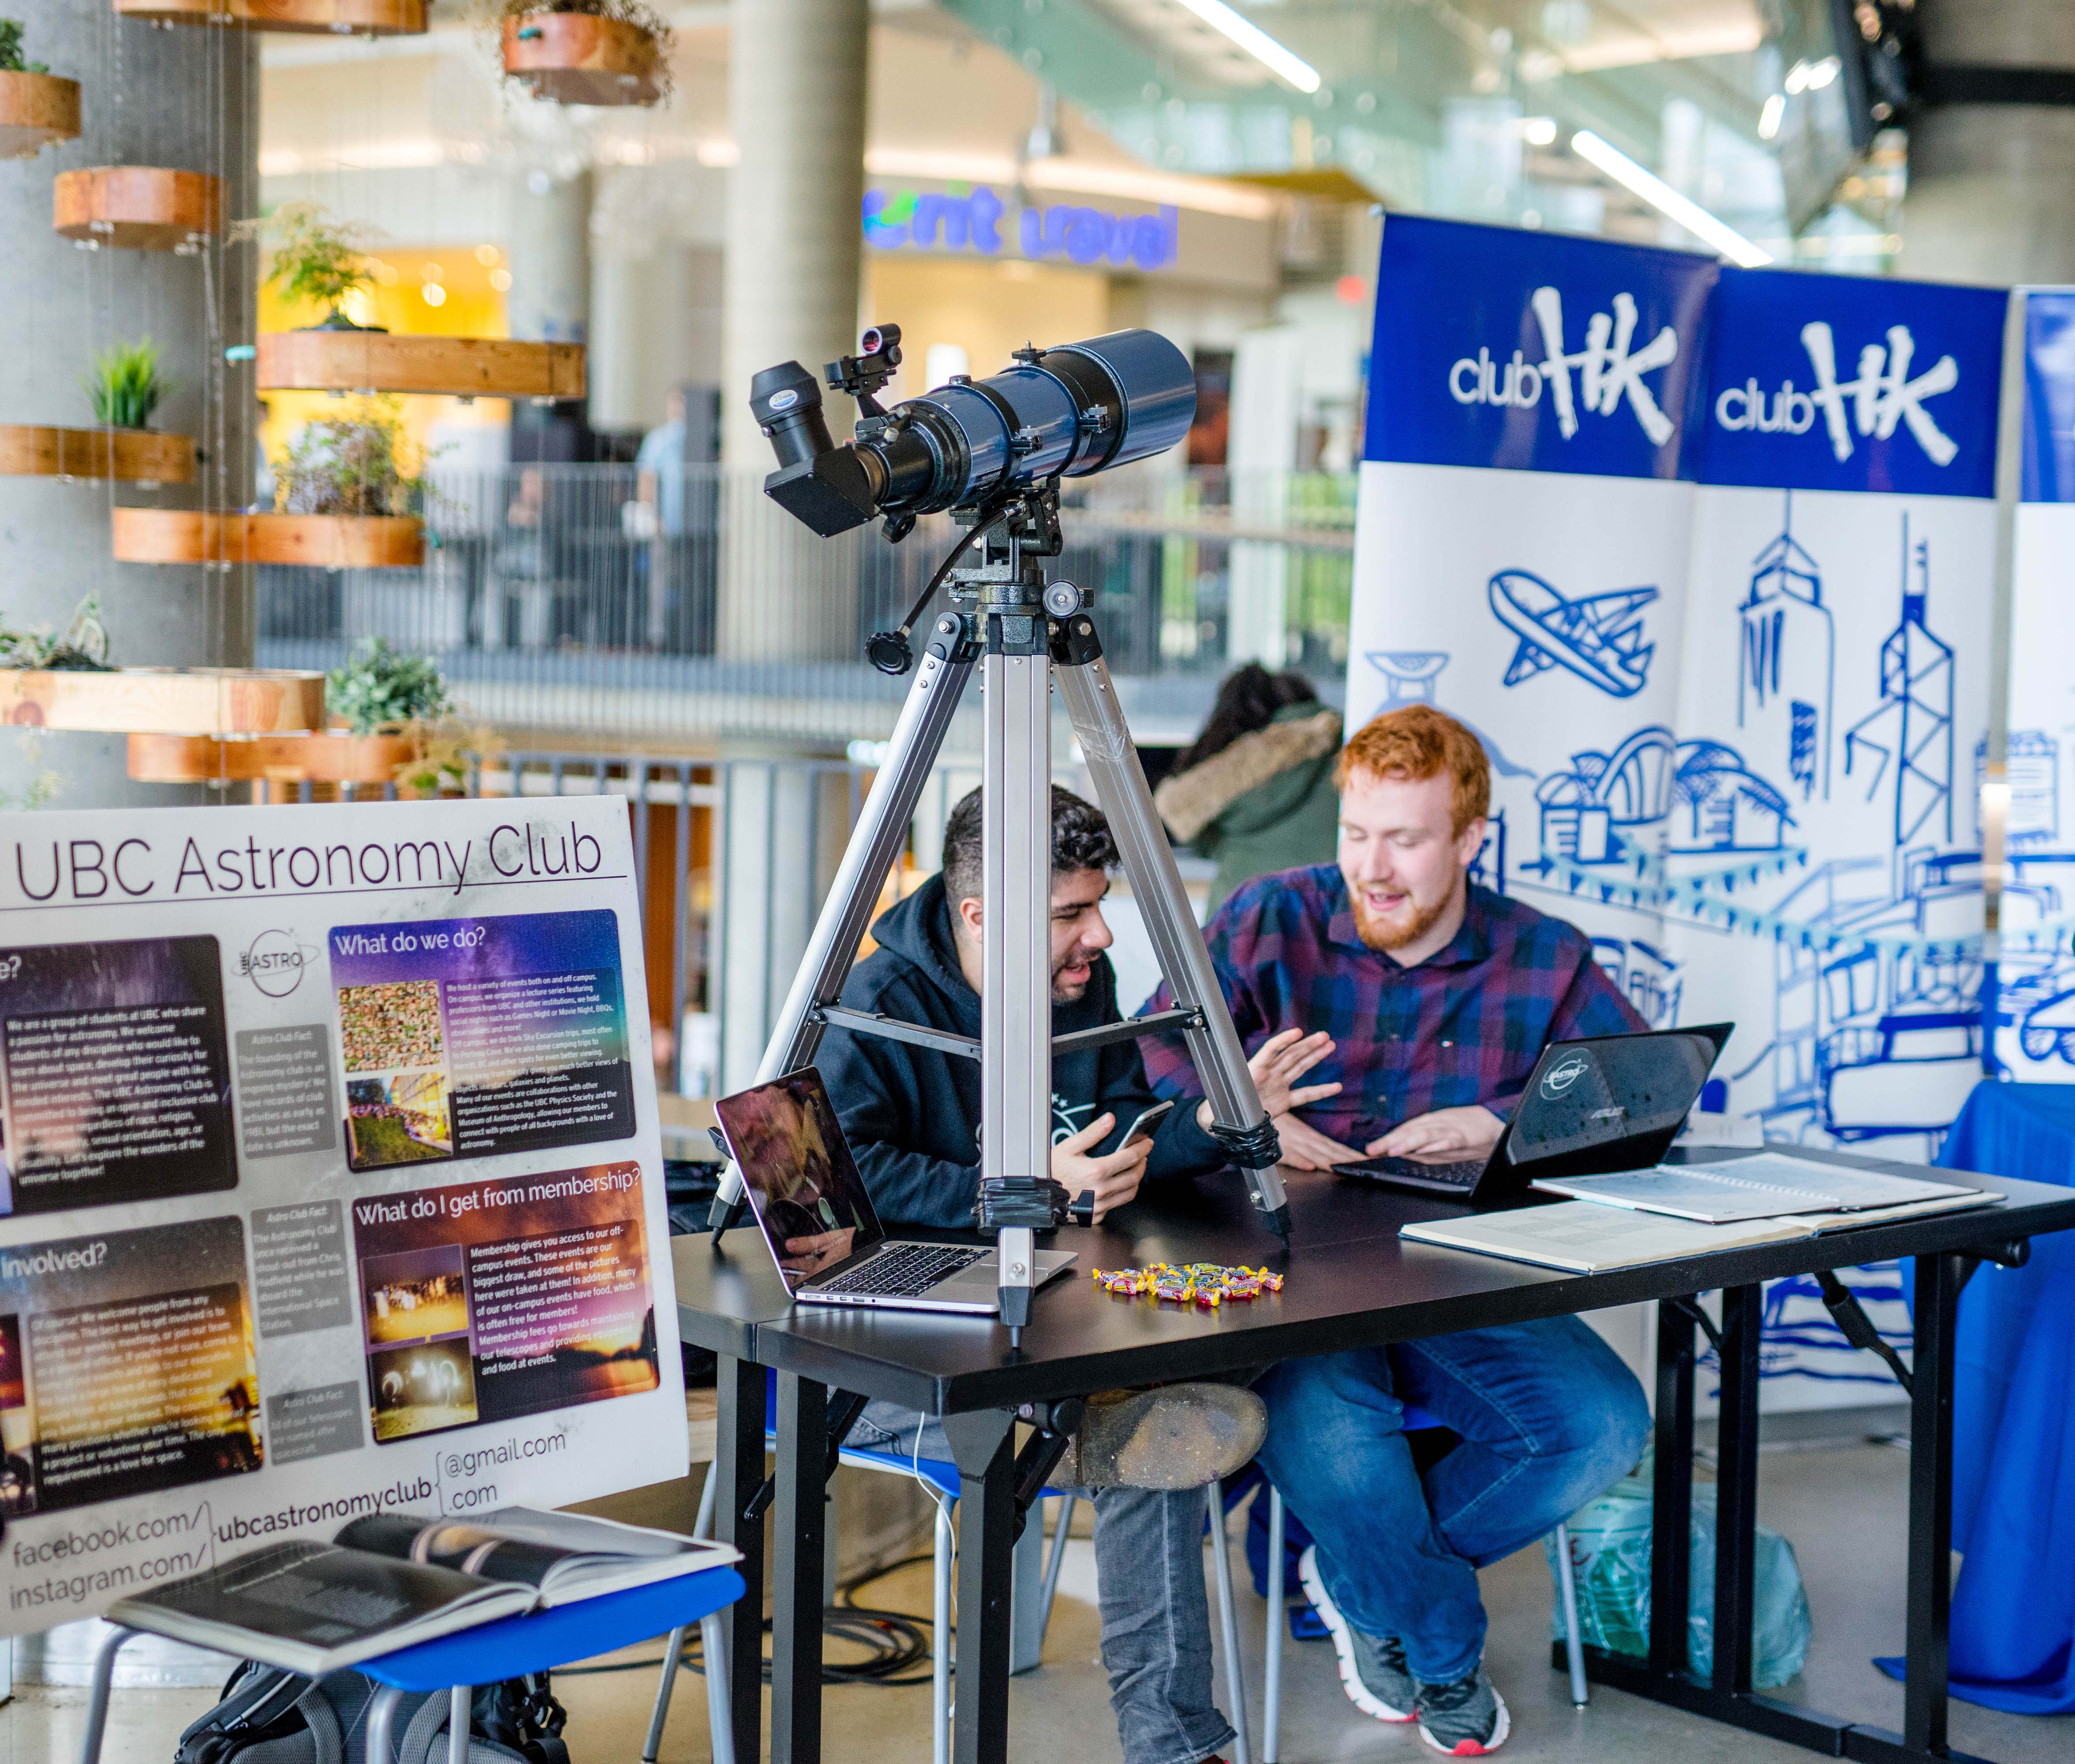 UBC Astronomy Club booth at Clubs Day